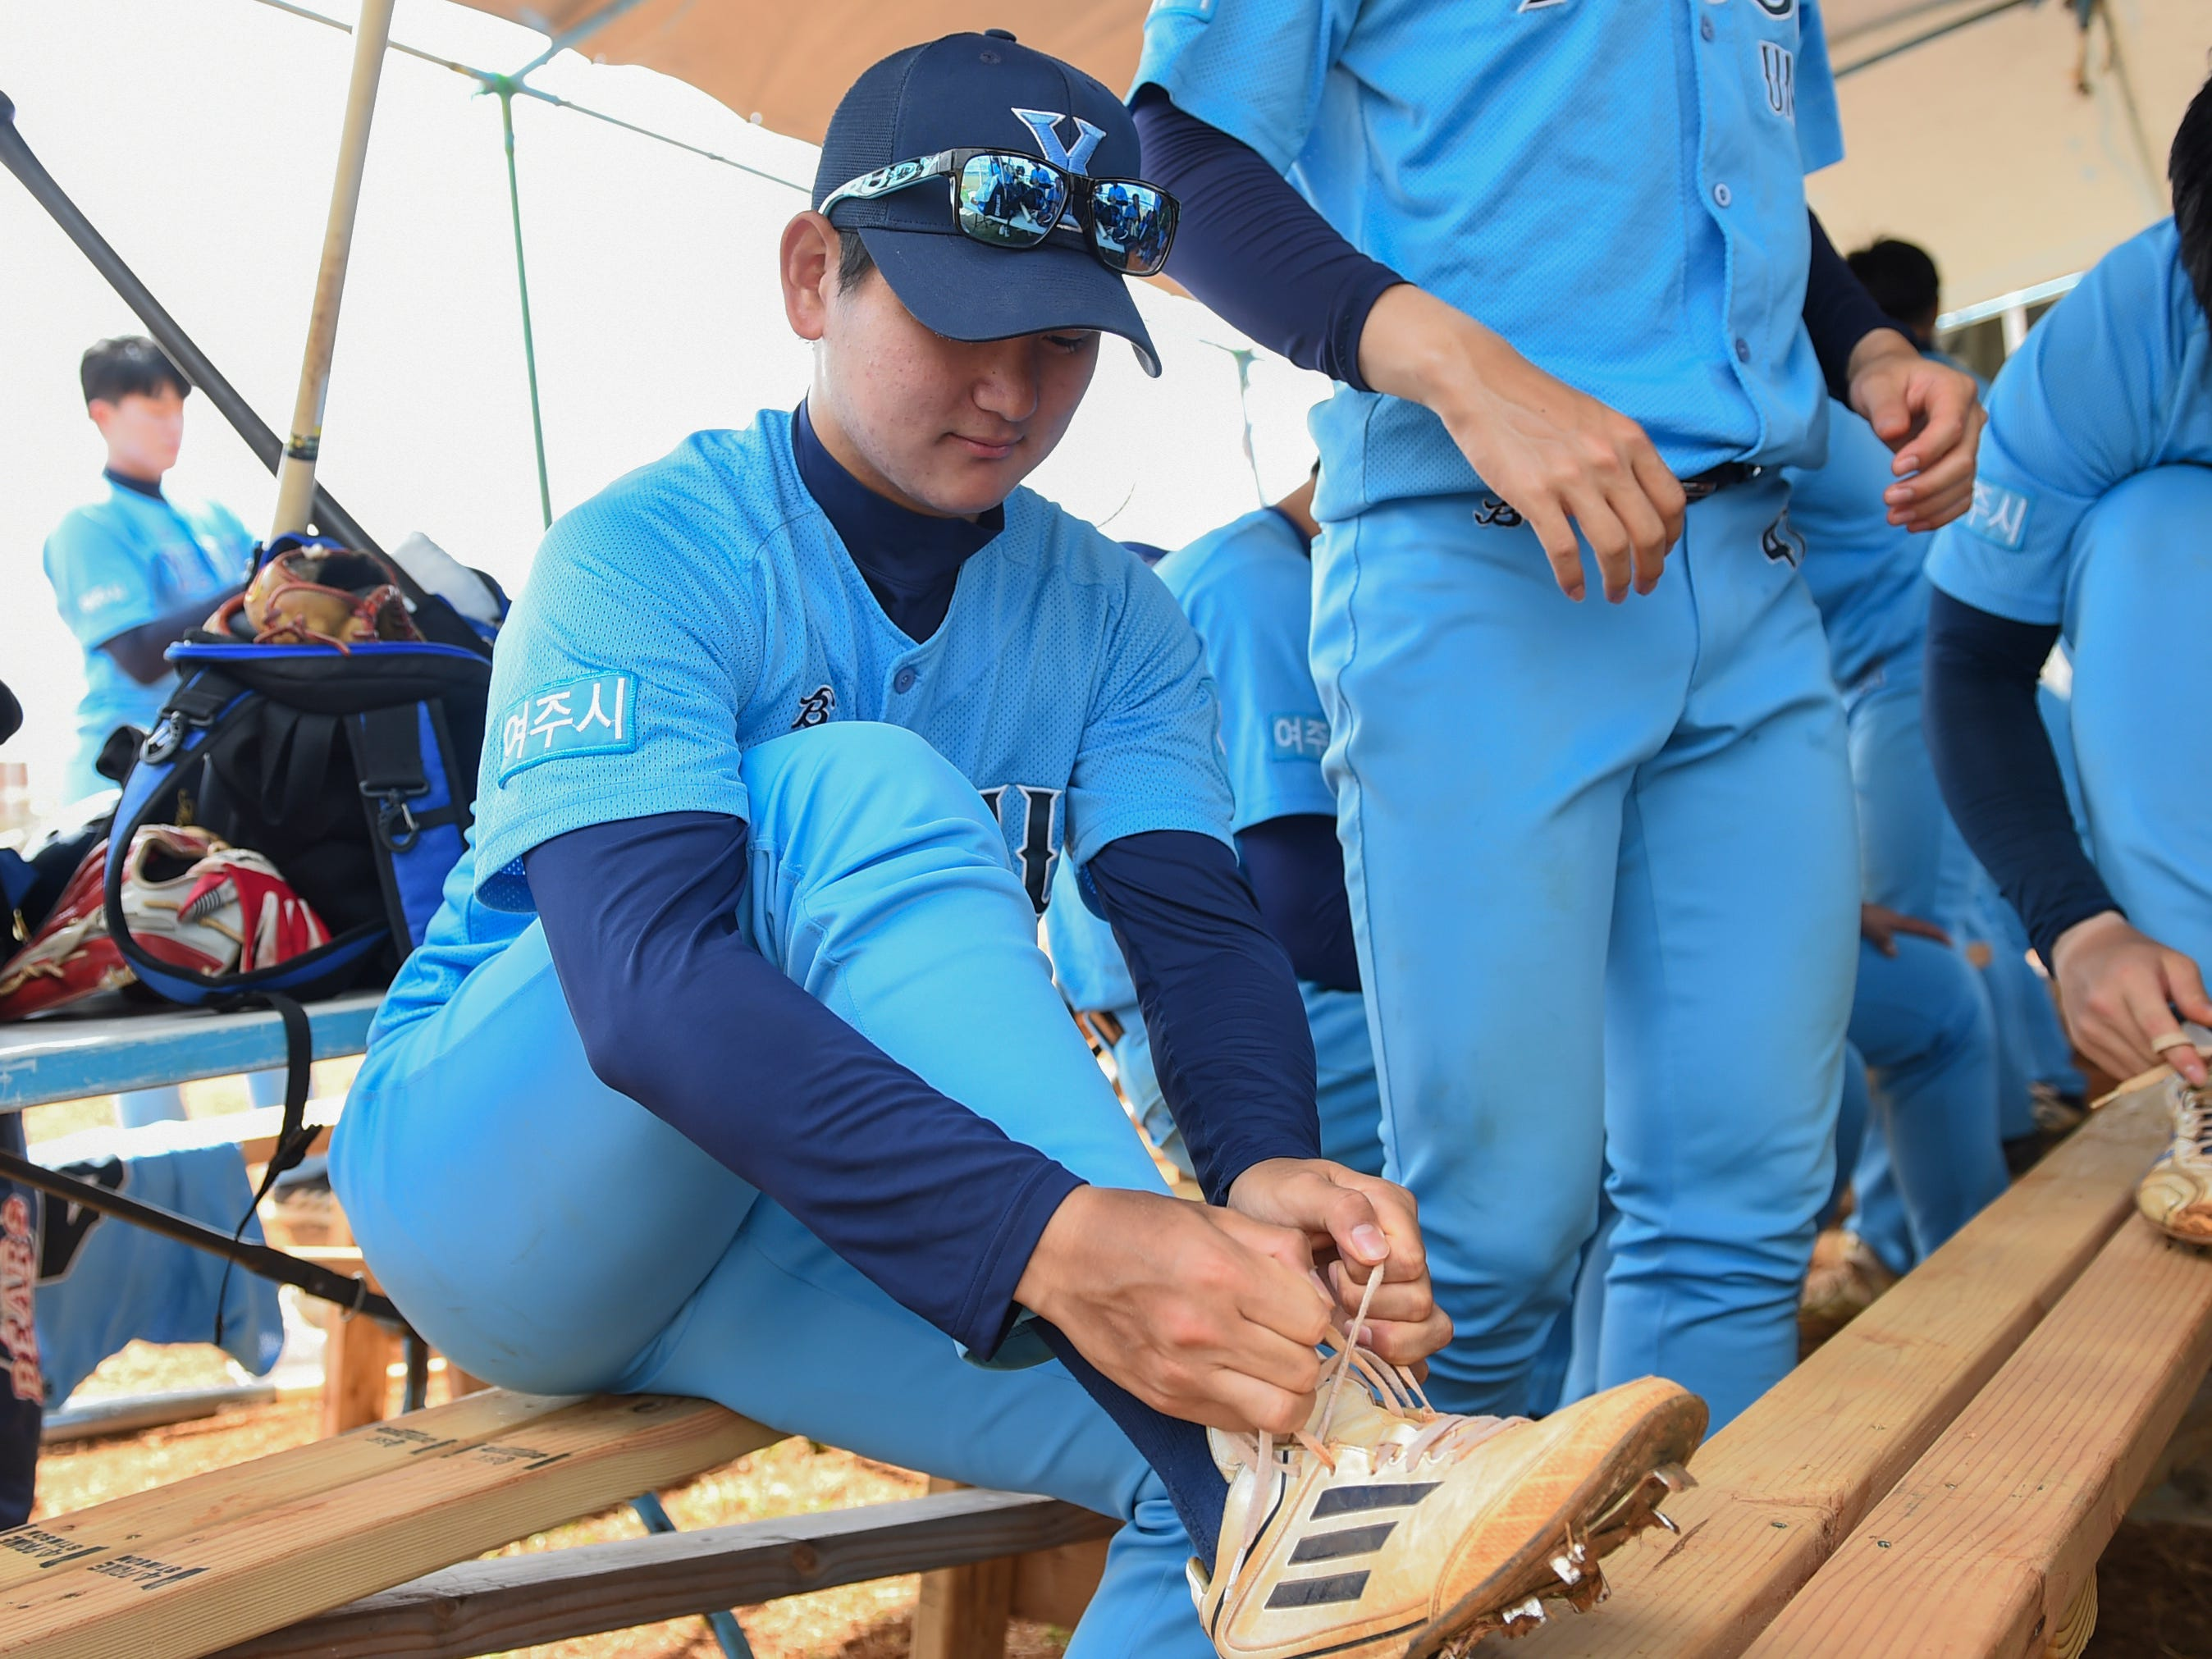 Members of the Yeoju University baseball team prepare for their winter training at the Guam Sports Complex in Dededo, Feb. 11, 2019.